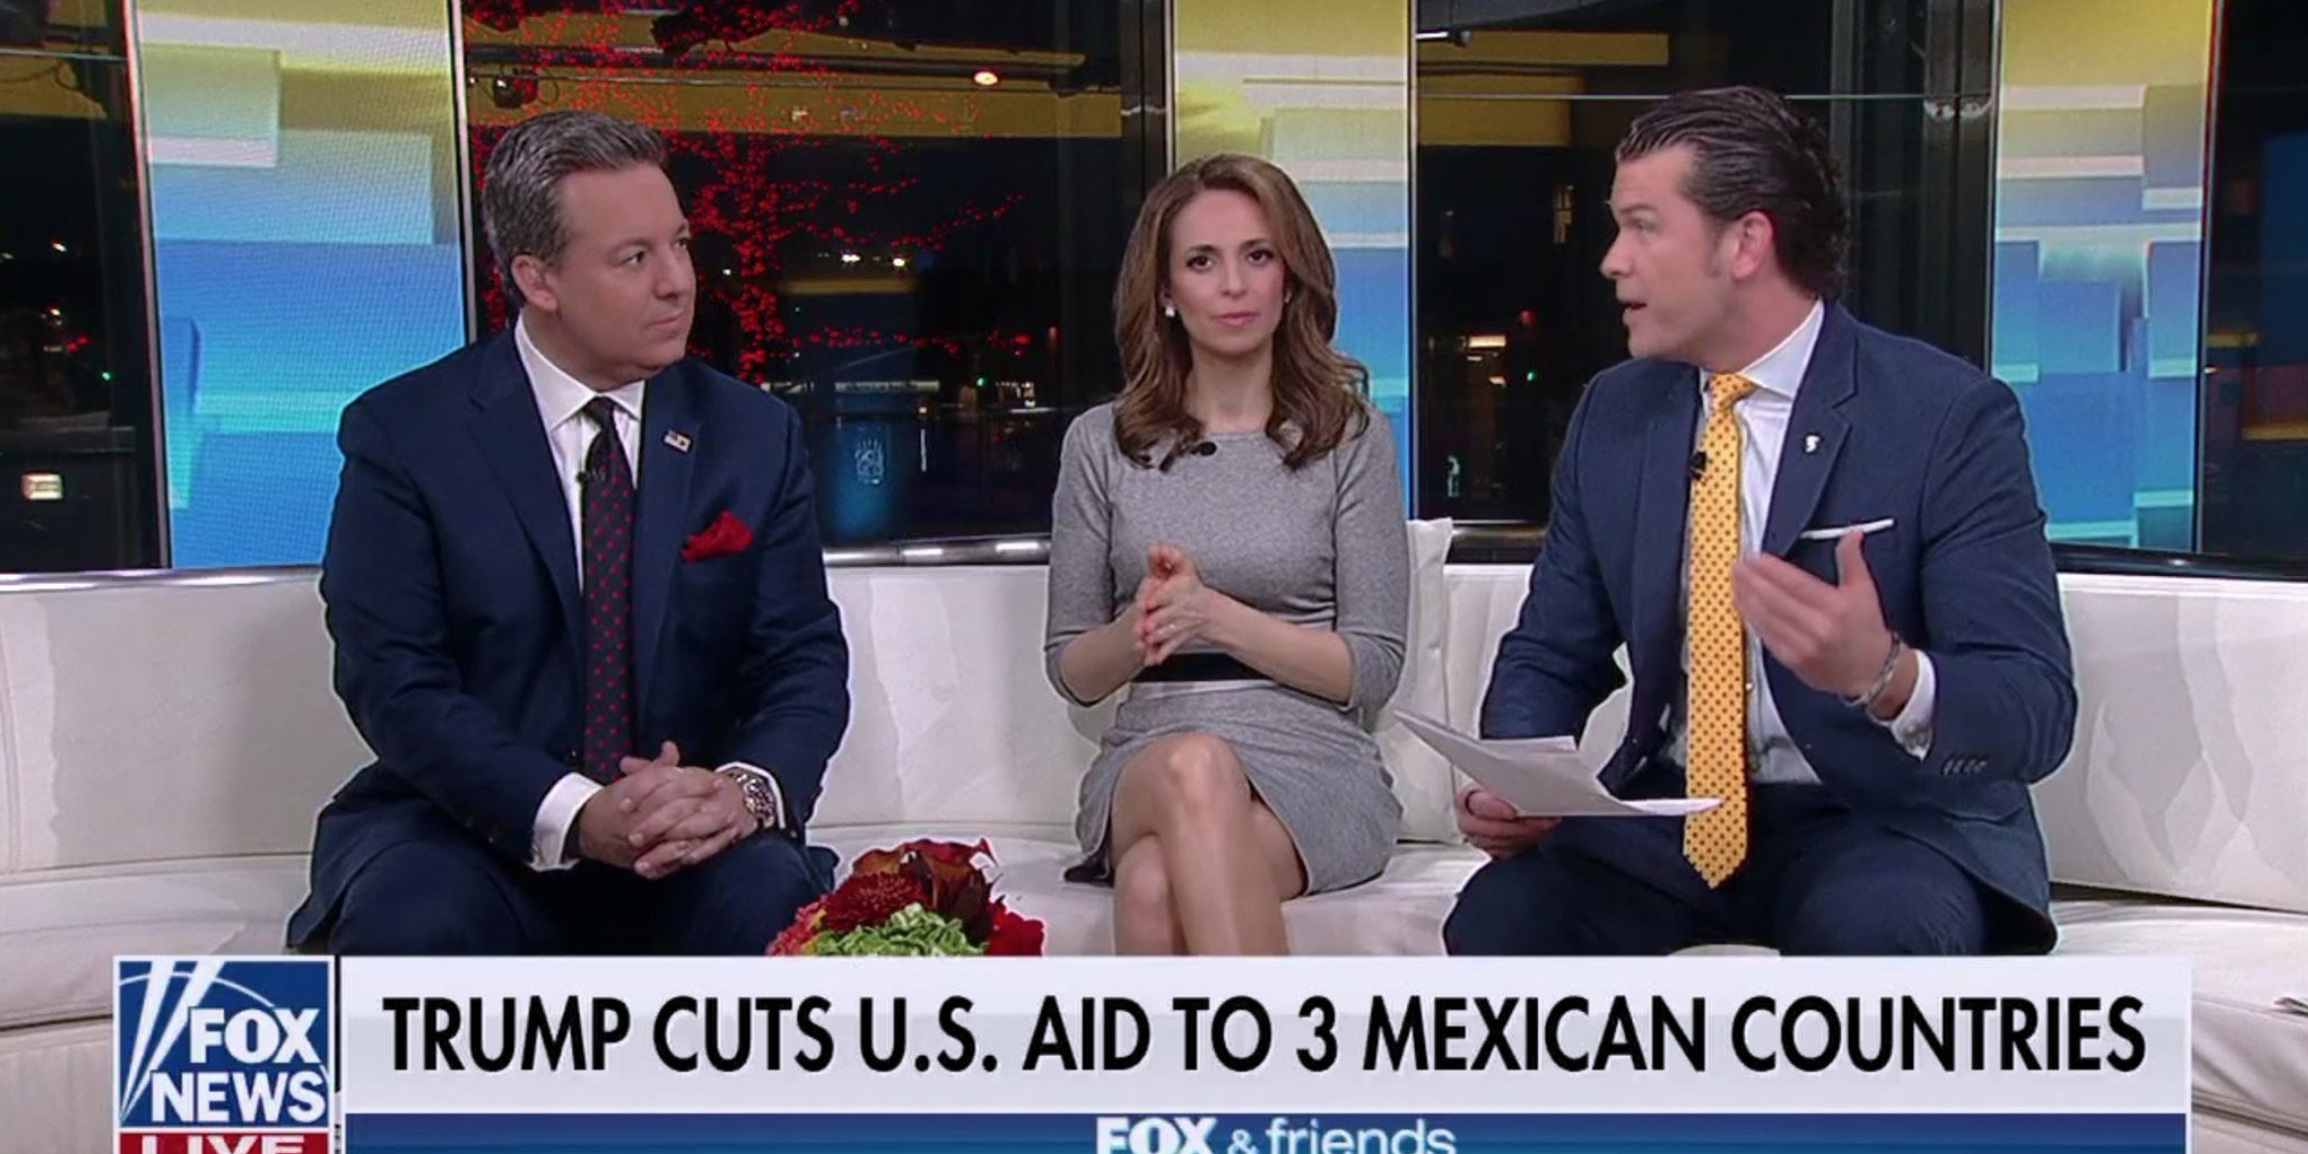 While crowing over Trump's move to cut foreign aid to the three Central American nations, Fox News once again said the quiet part out loud.